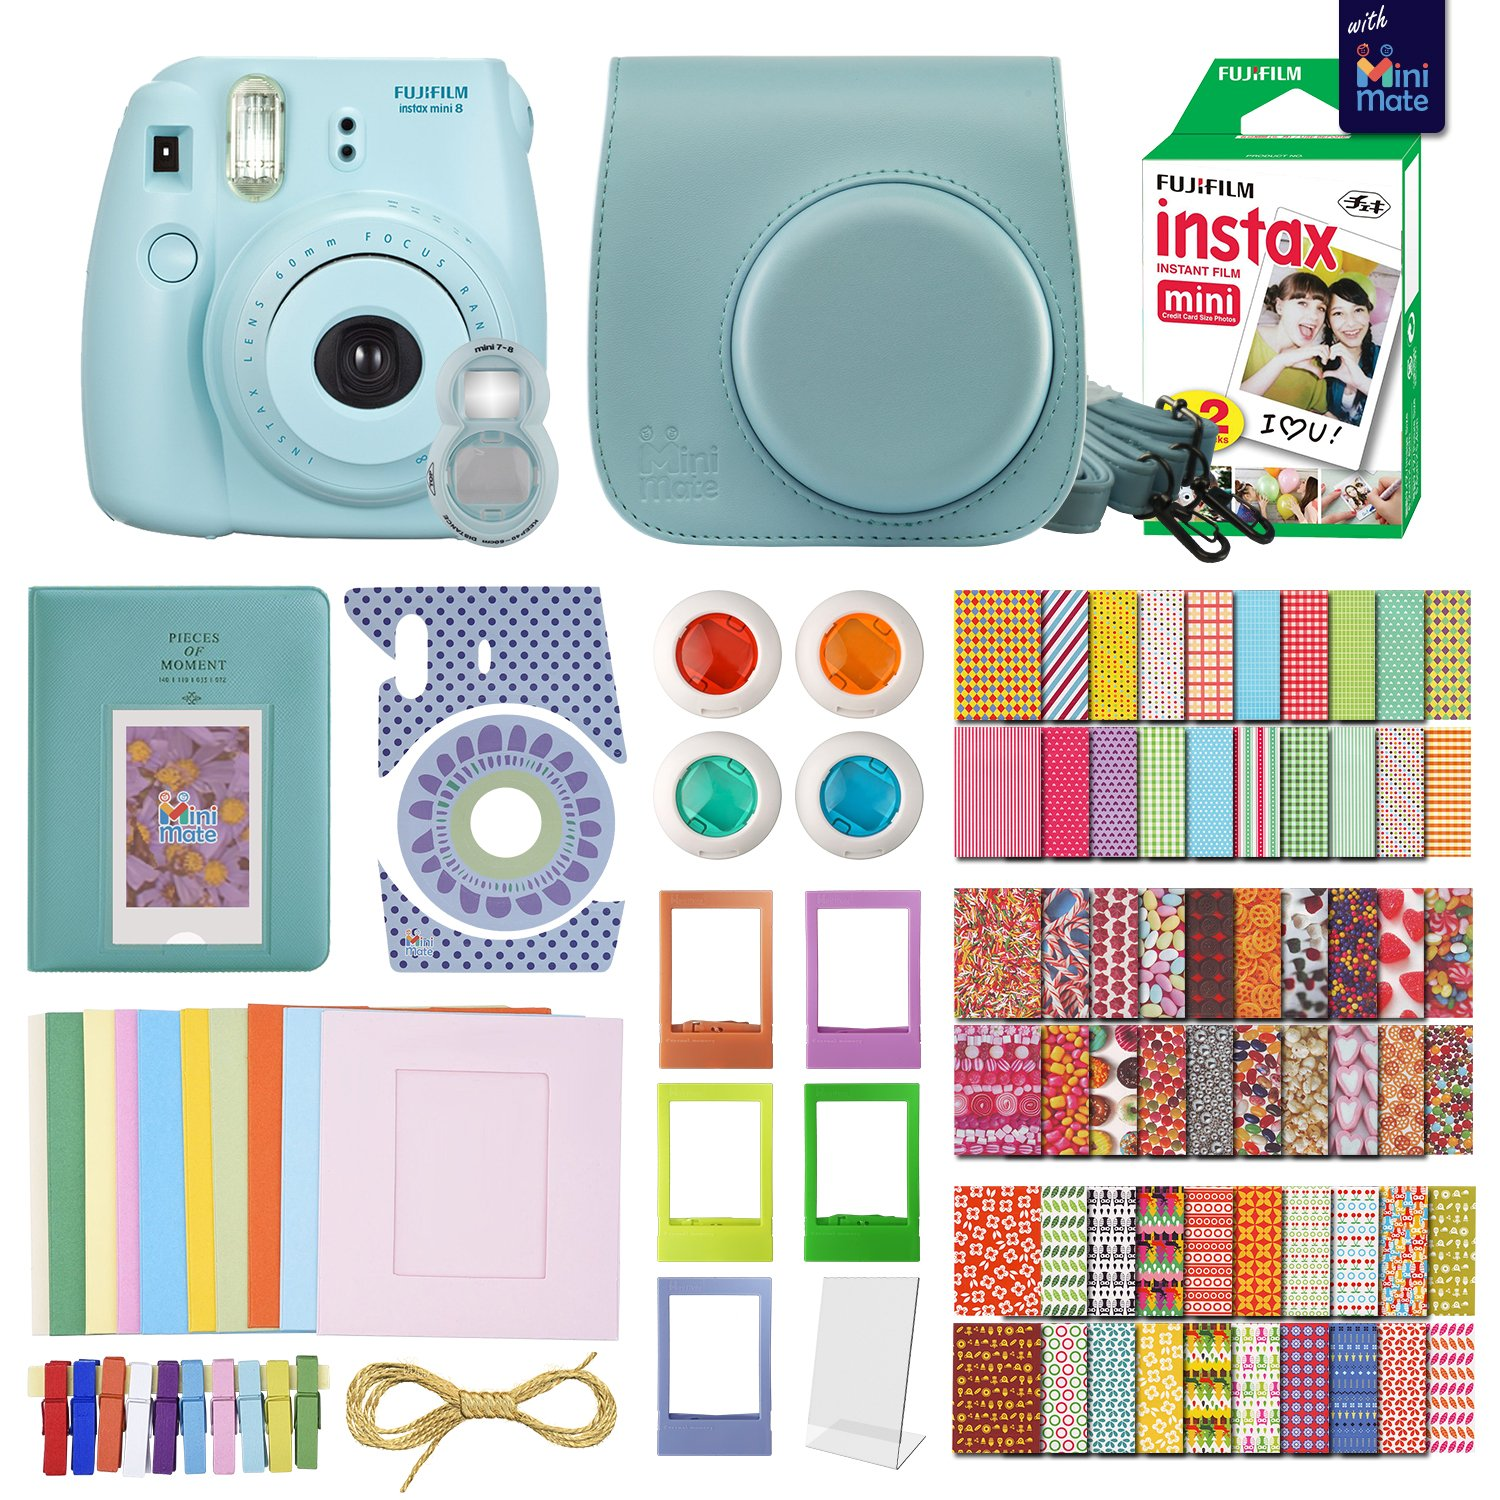 FujiFilm Instax Mini 8 Camera With 20 Instax Film + Accessories KIT for Fujifilm Instax Mini 8 Camera includes: + Custom Fitted Case + Assorted Sticker, Plastic & Paper Frames + Photo Album + MORE by MiniMate